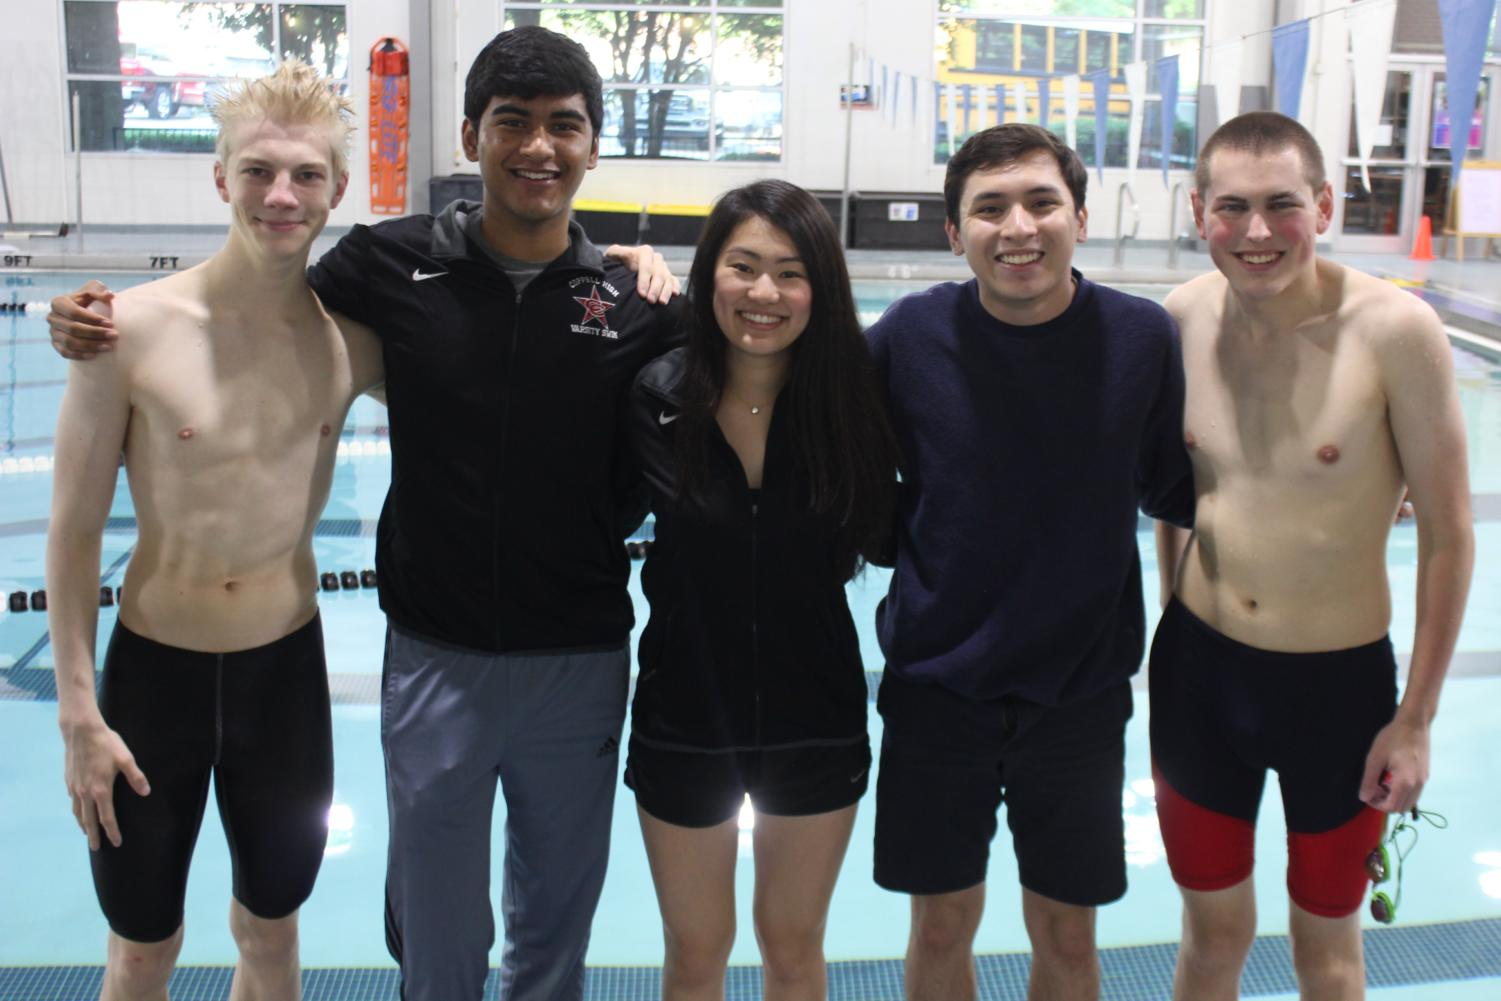 Coppell seniors Yue Taira, Emil Aaltonen, Matthew Rodman, Elieser Gonzalez and Rithvik Gunda make up the last class of swimmers to have experienced both former coach Rick Whittlesey and current coach Marieke Mastebroek. From four years of swimming, each senior has collected memories and developed relationships they will remember even after they graduate.